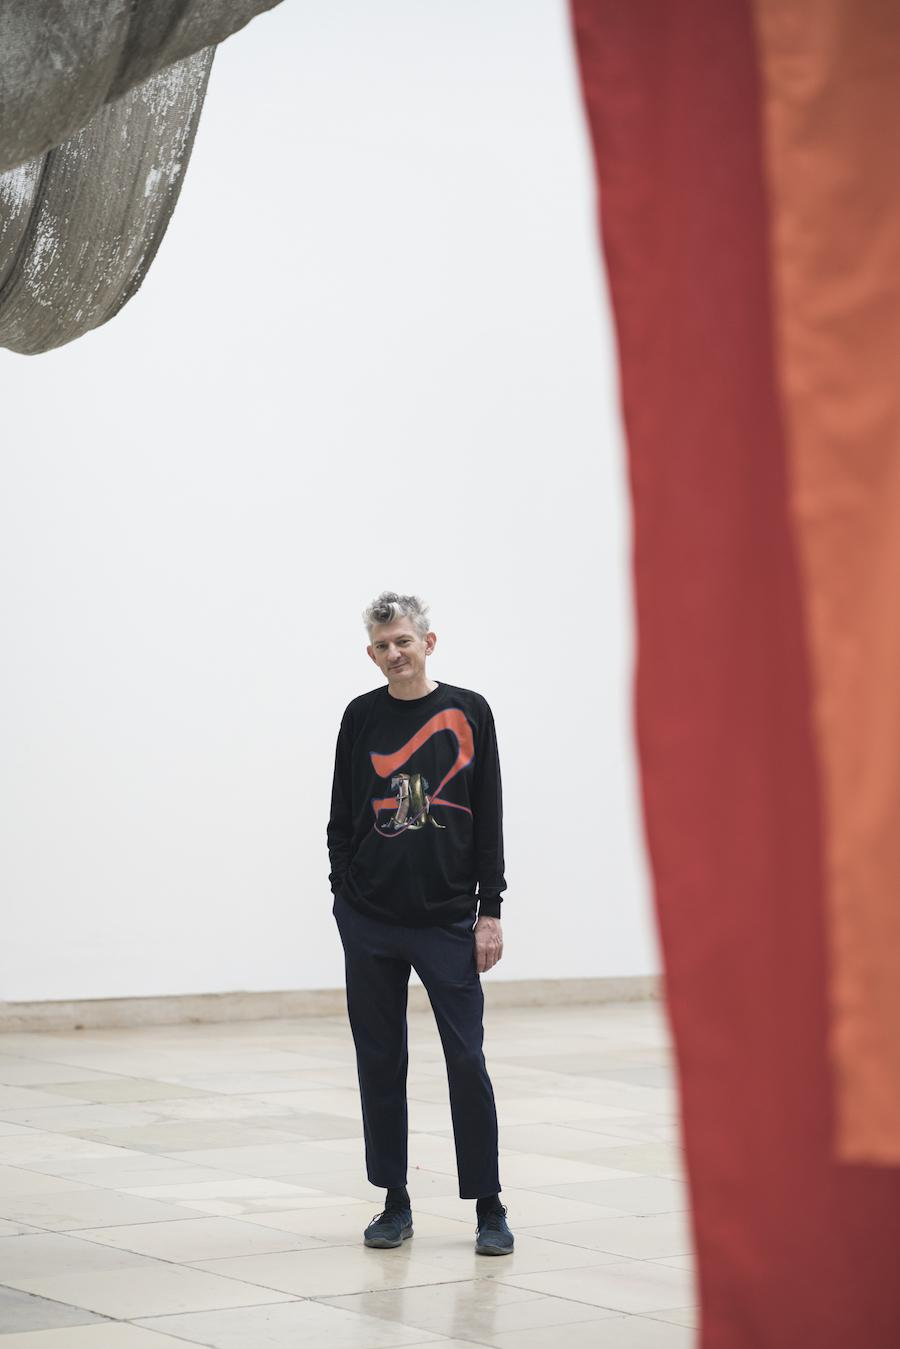 Photograph of a man stood in a gallery next to red artwork